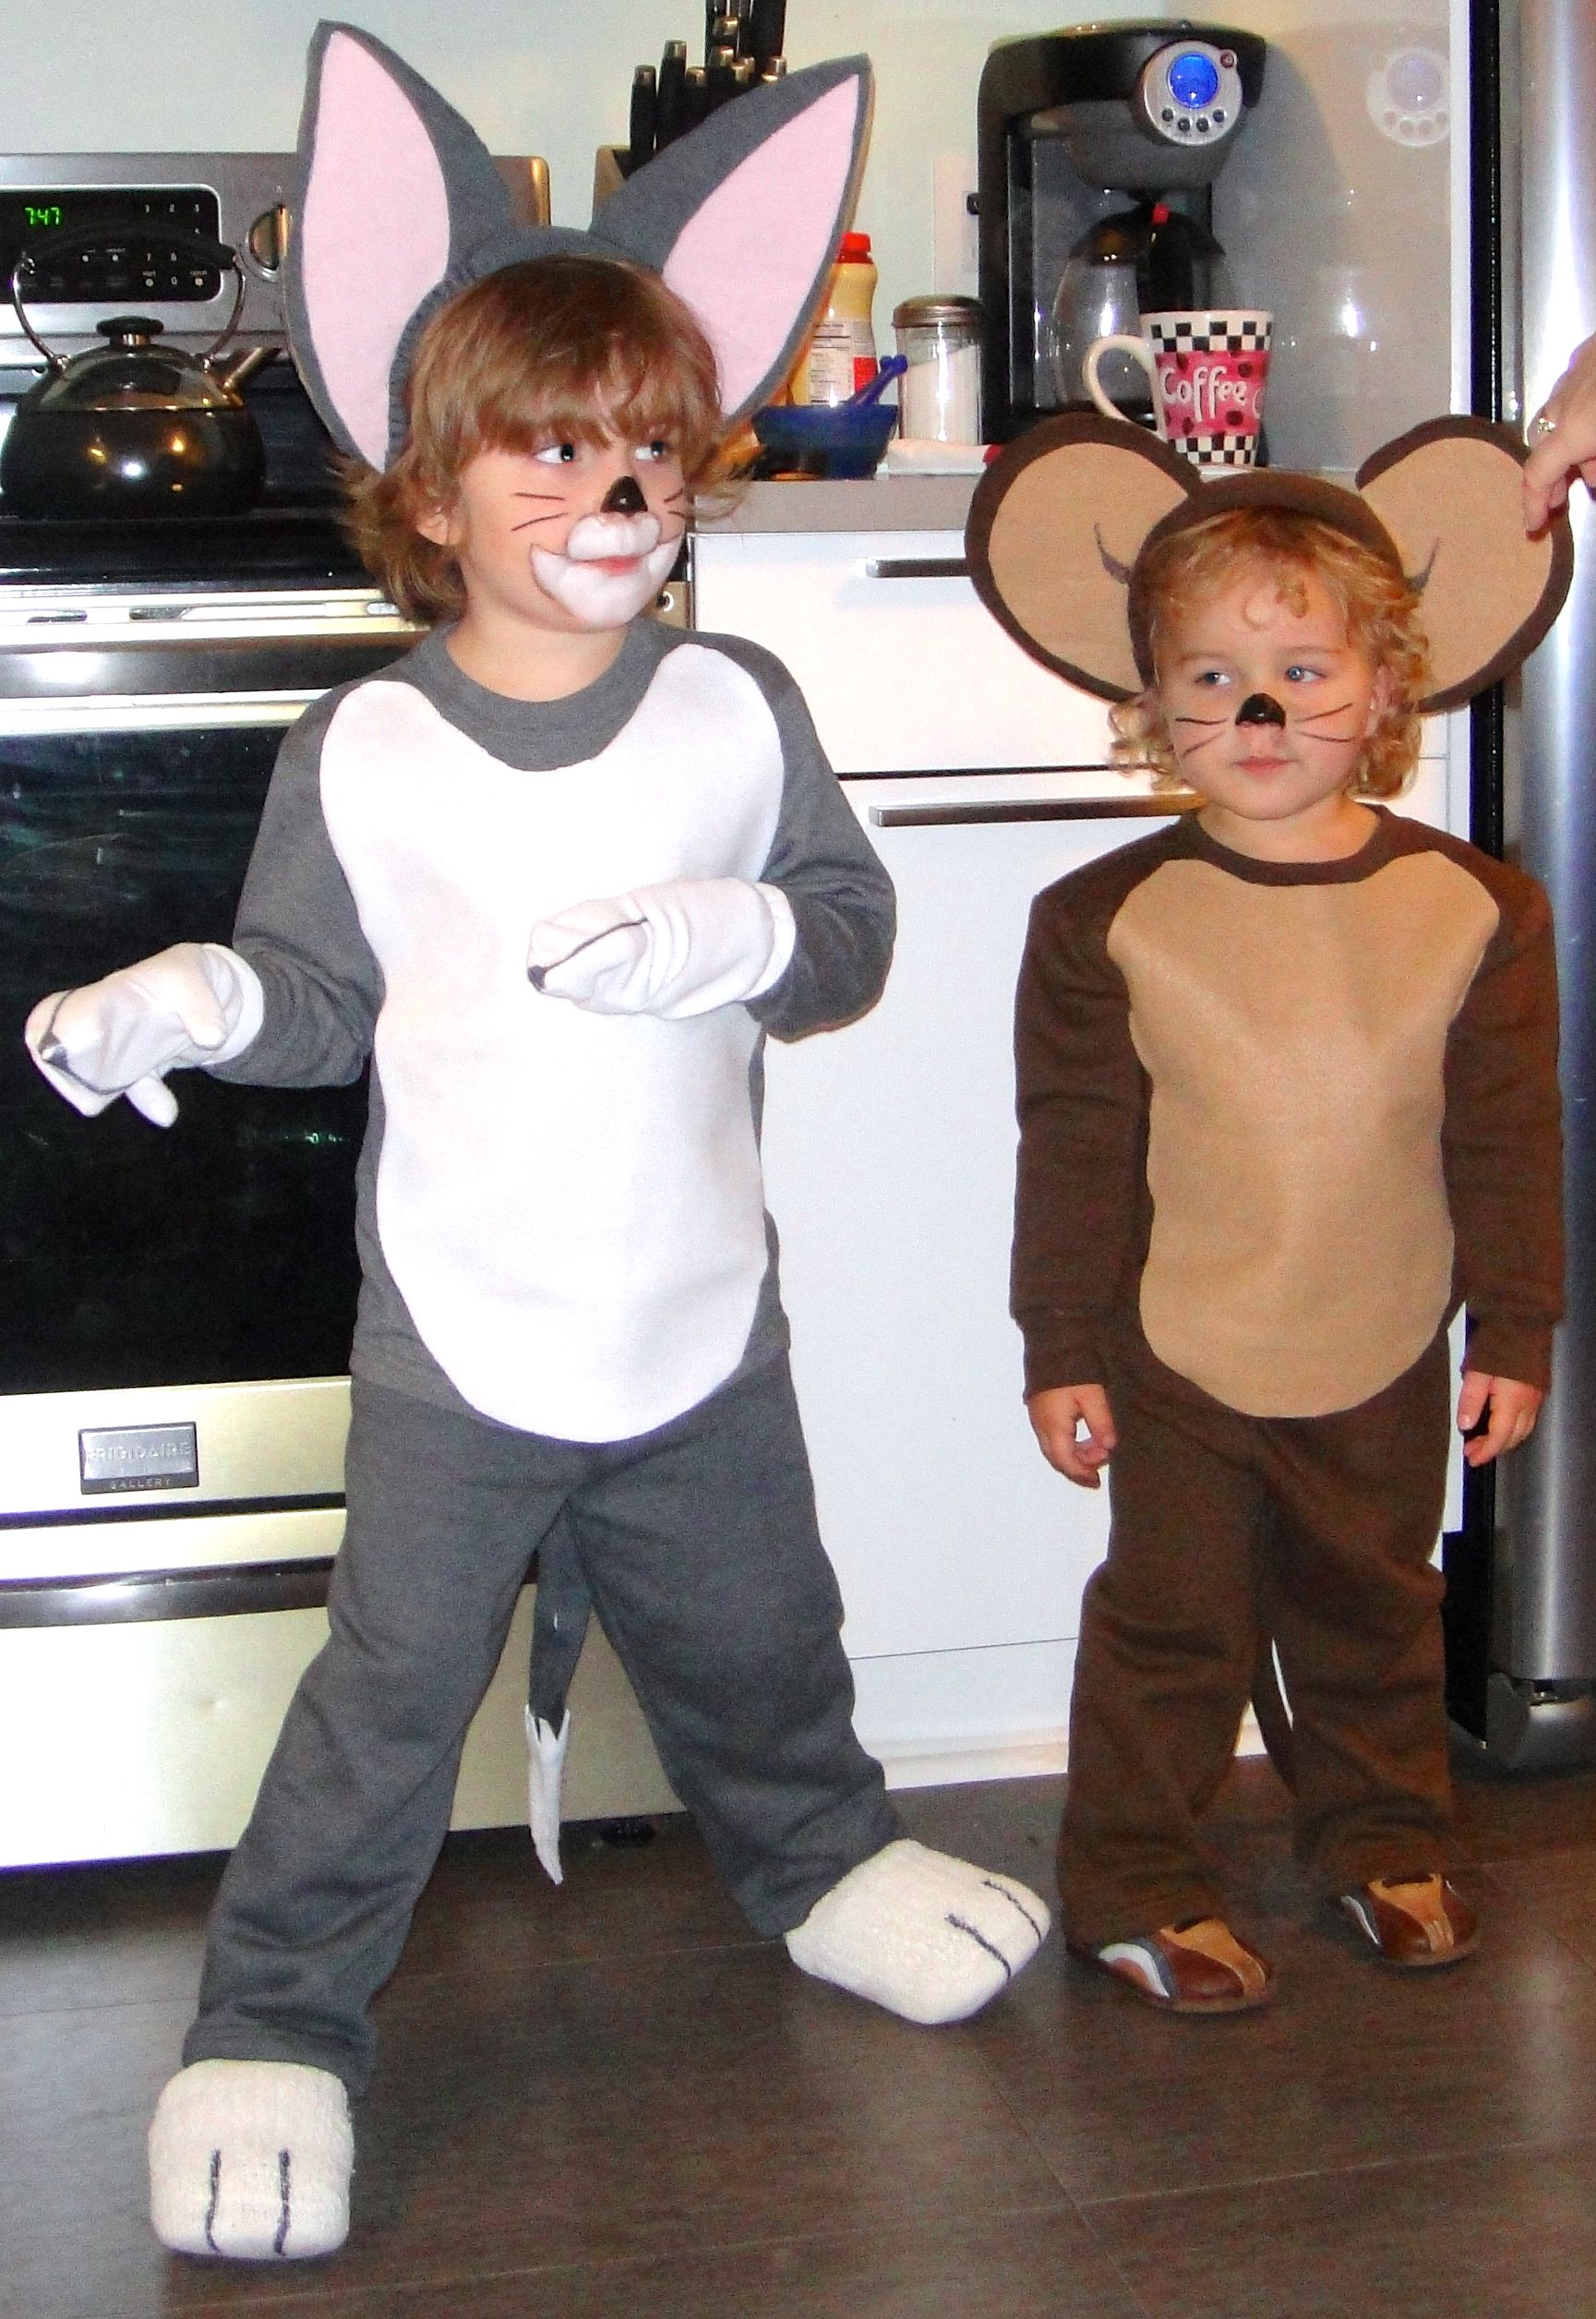 tom and jerry costumes #halloweencostumes #paircostumes